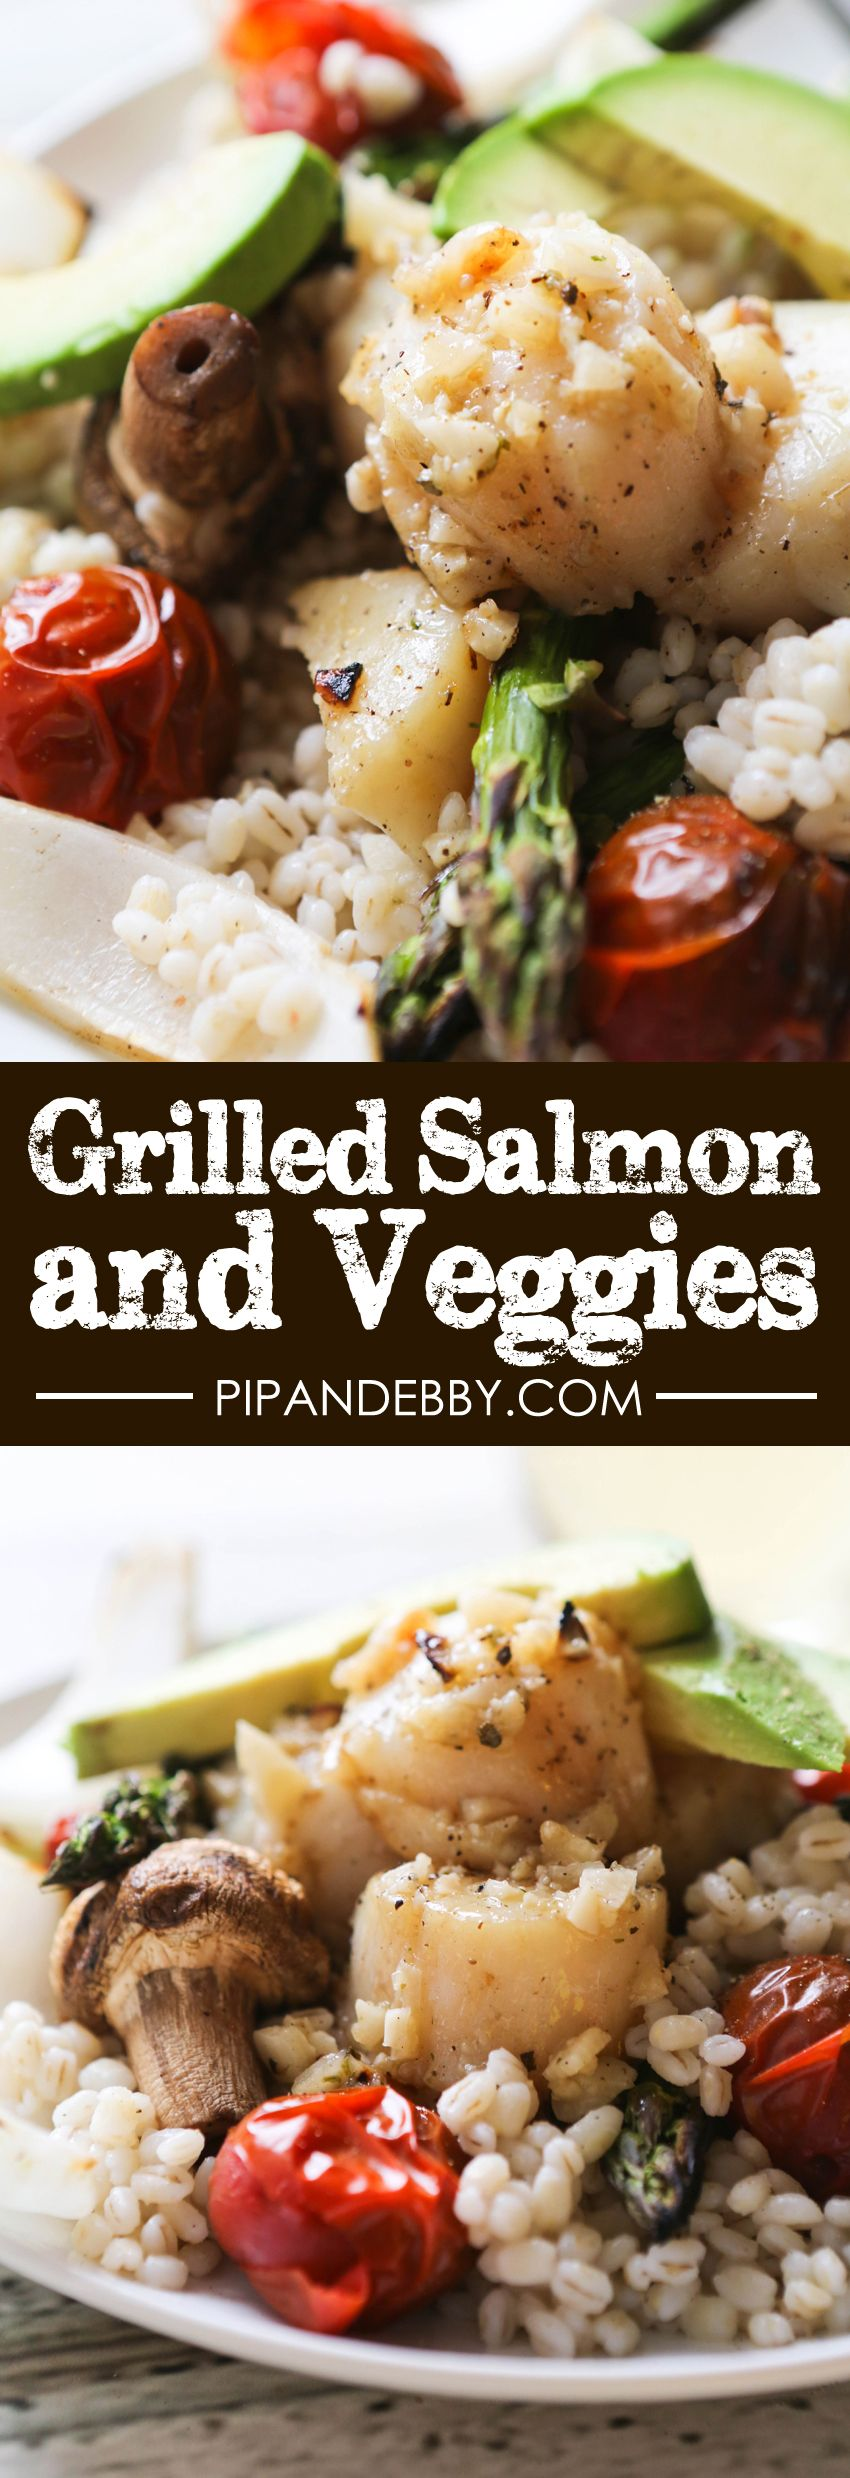 Grilled Scallops and Veggies | This is the PERFECT summer grilling recipe! Light, flavorful, easy to make and full of texture.